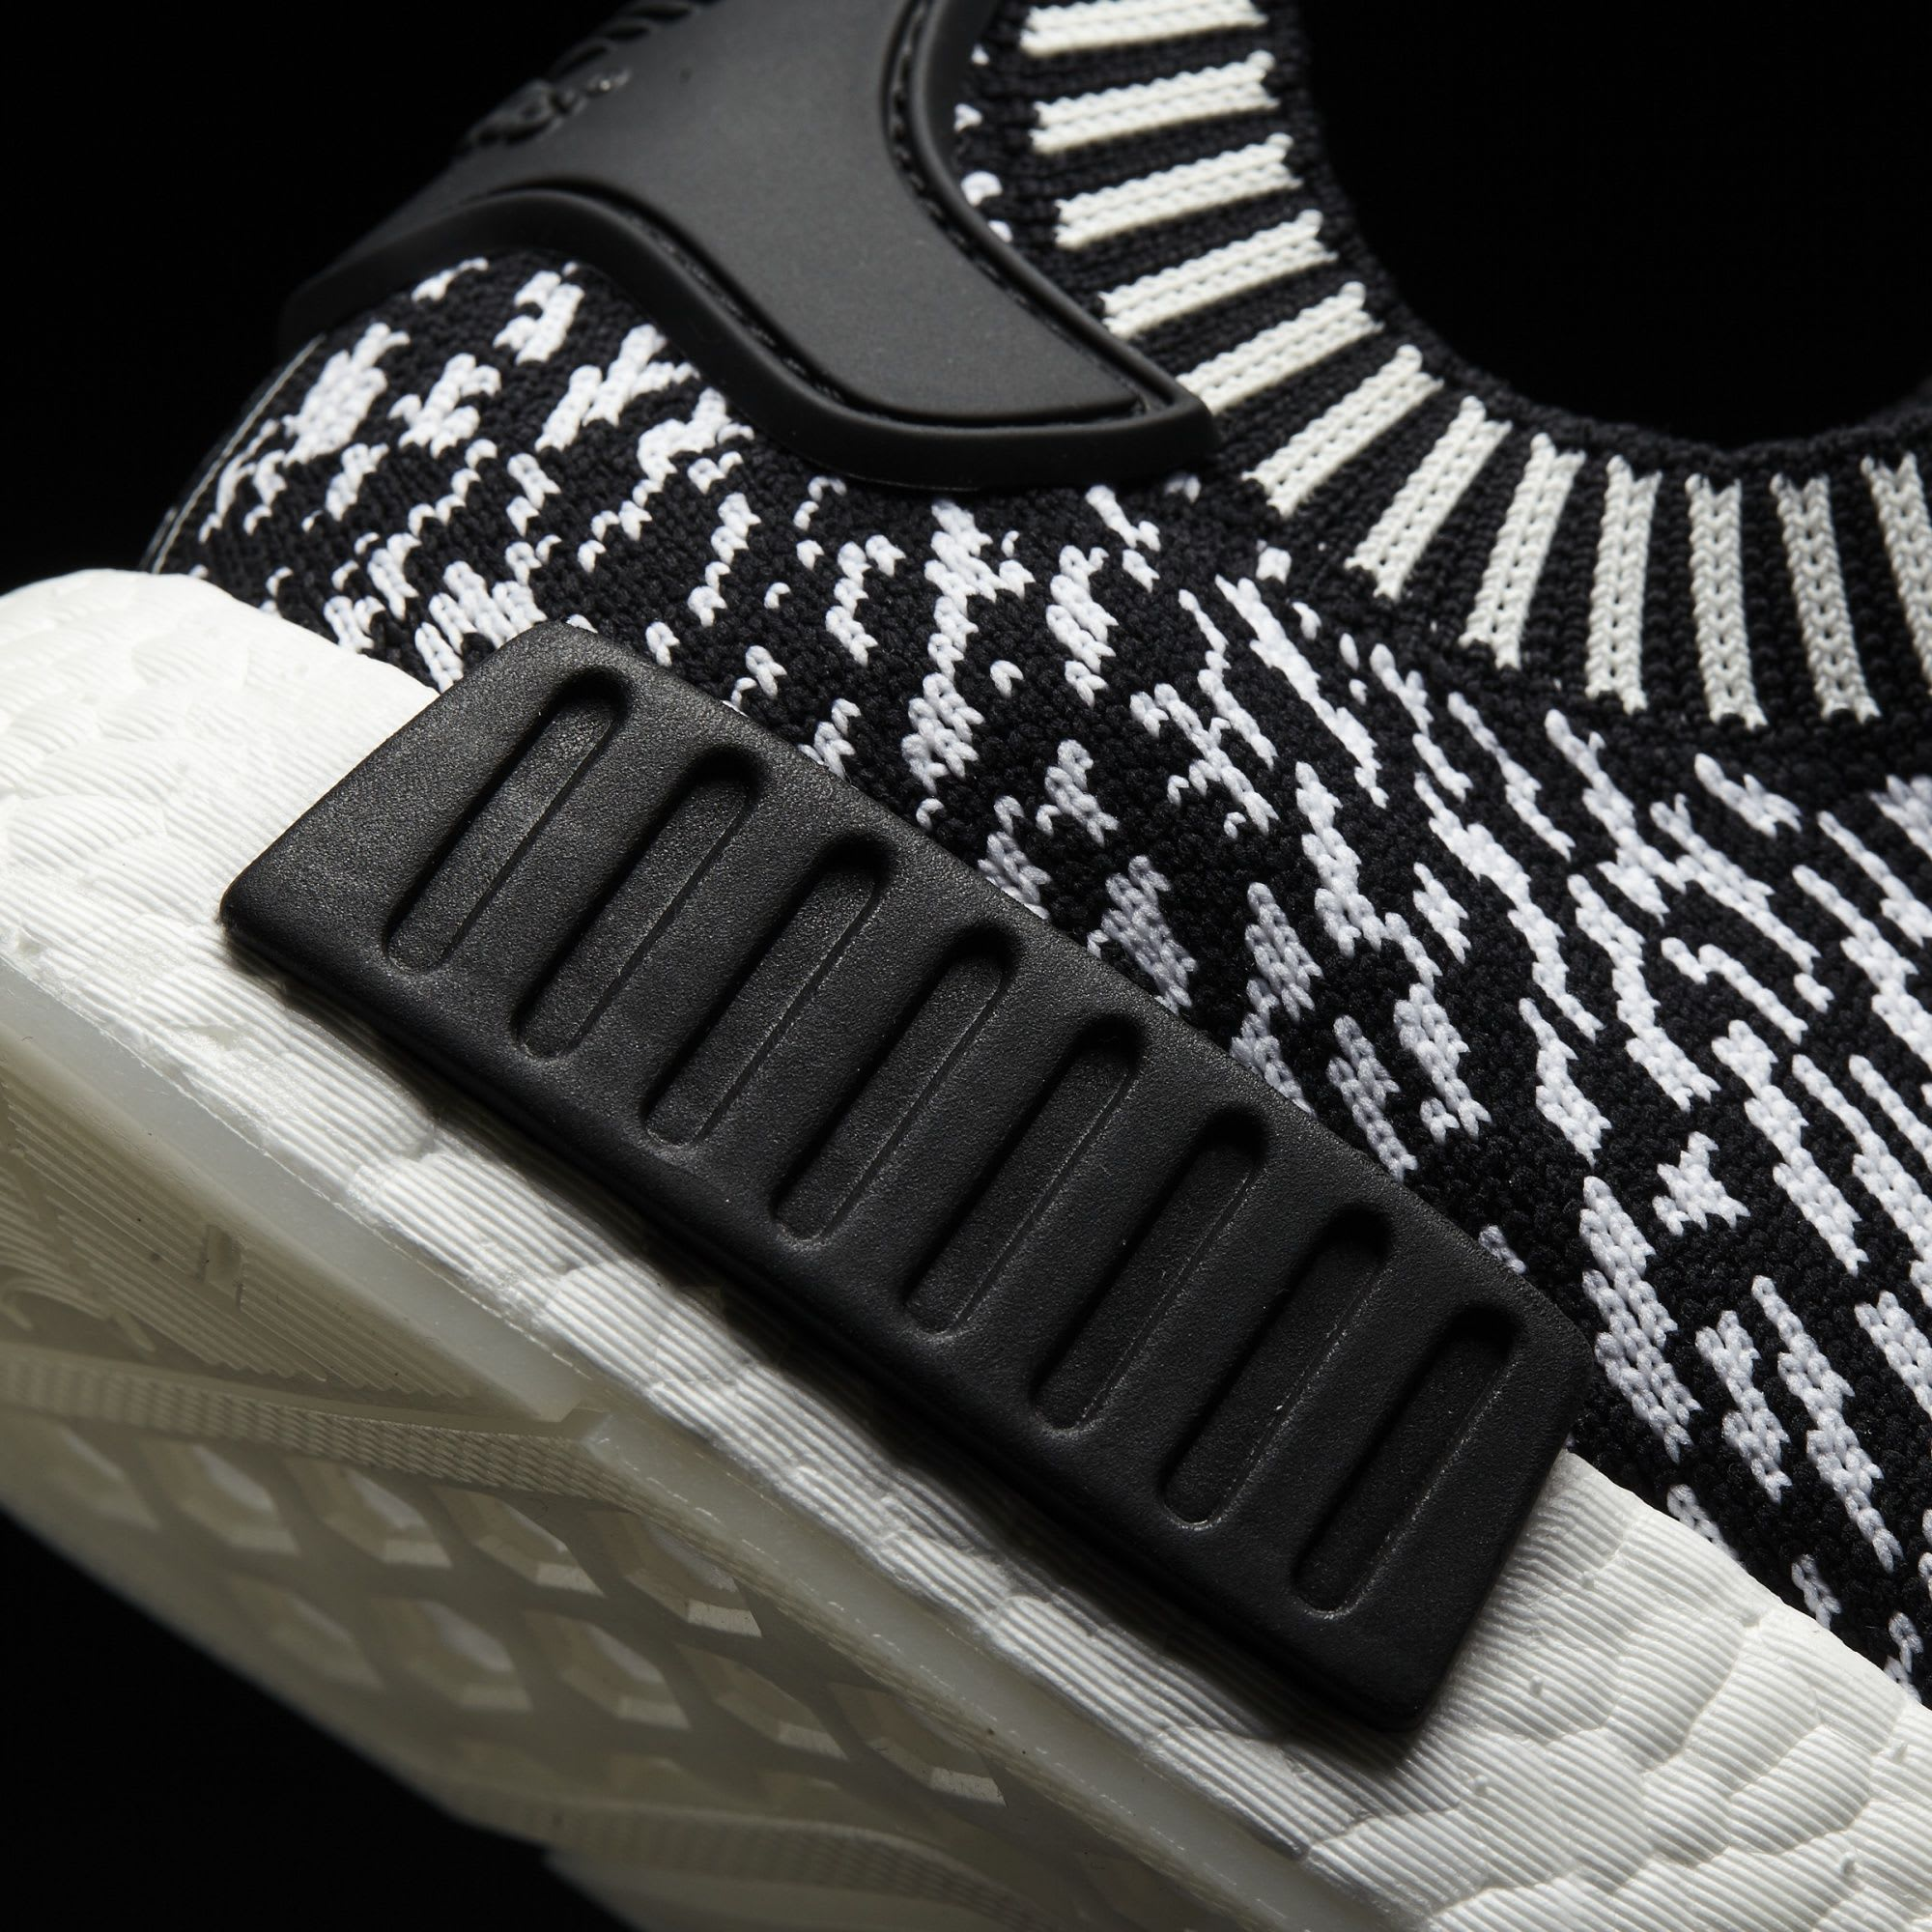 e929b5fb The Cheap Adidas NMD City Sock 2 will release in a Core Black (Style Code